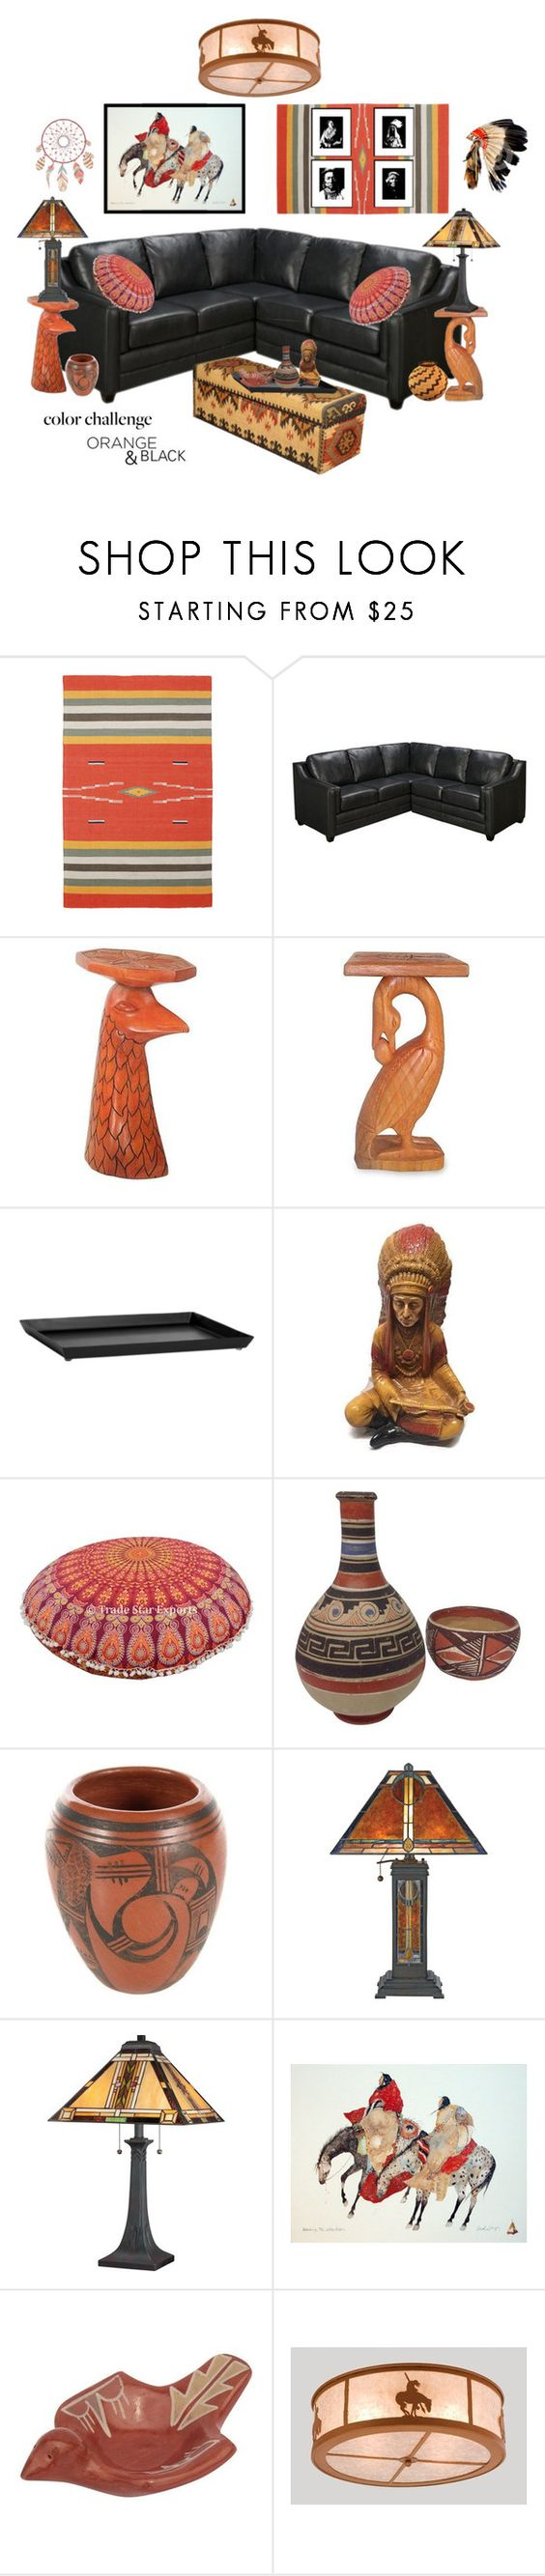 """Native American Design"" by purplepoet ❤ liked on Polyvore featuring interior, interiors, interior design, home, home decor, interior decorating, St. Croix, NOVICA, Quoizel and Meyda"